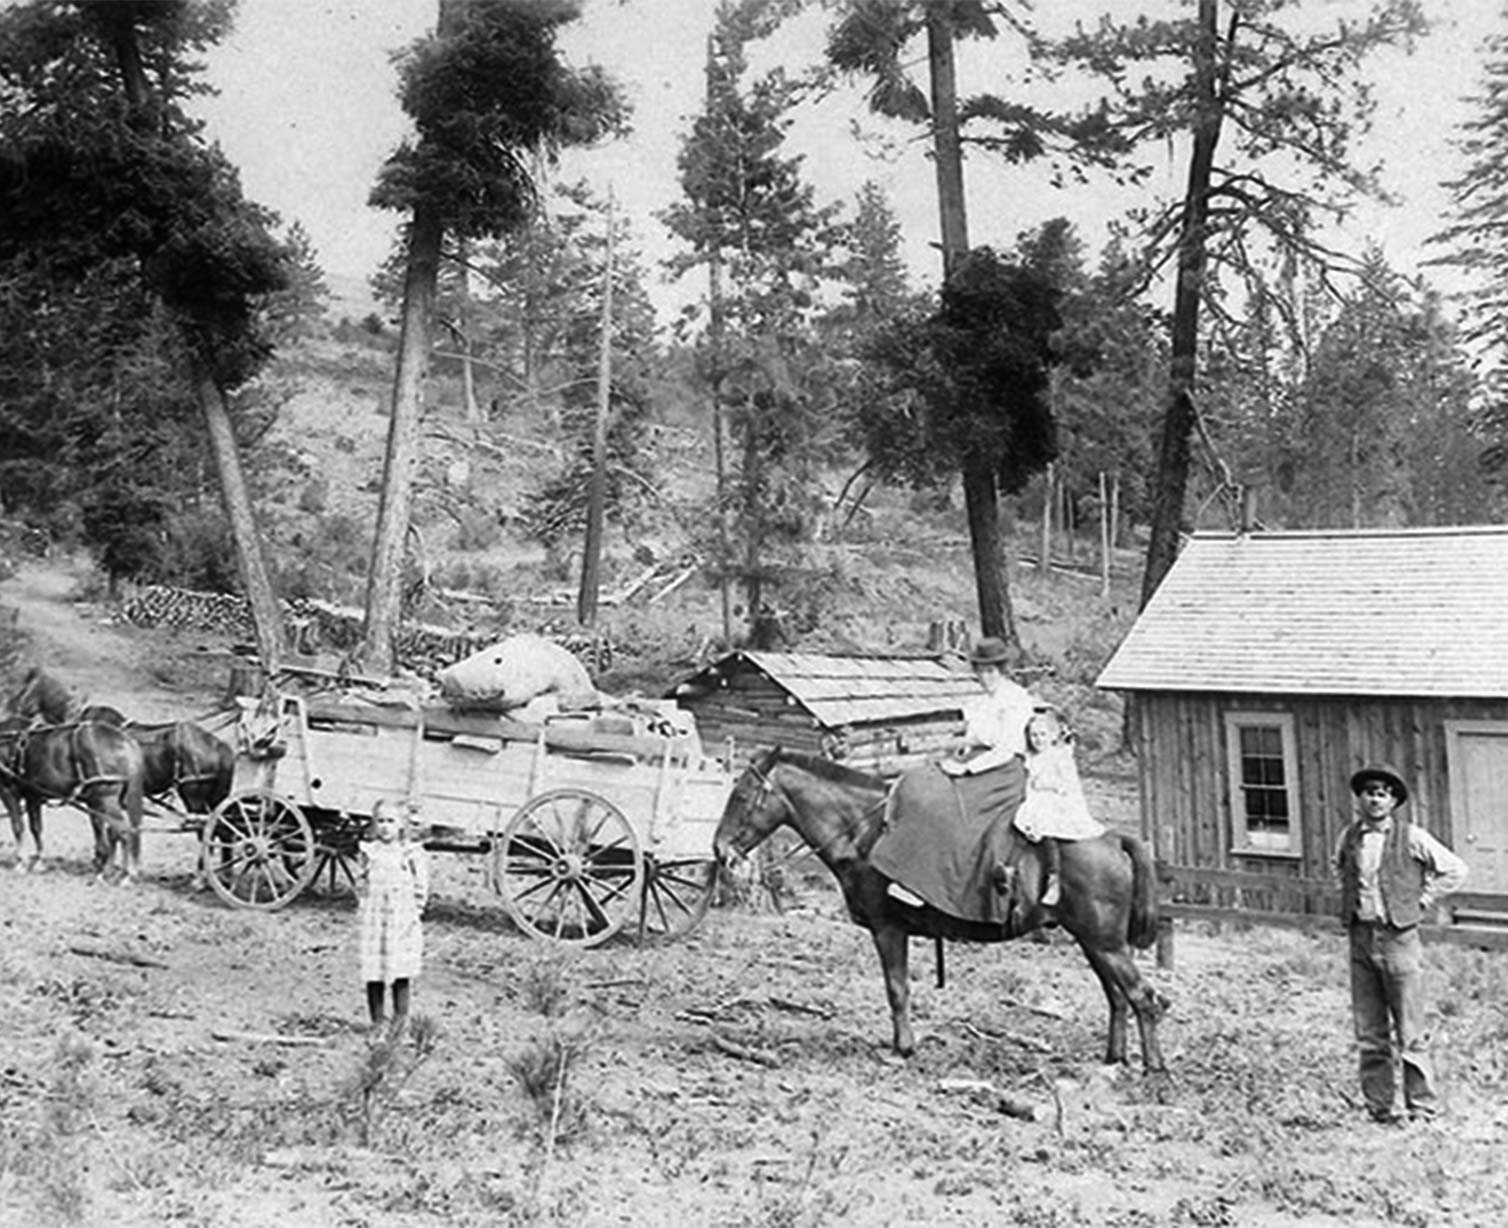 Wilson Family in front of cabin on horse and wagon